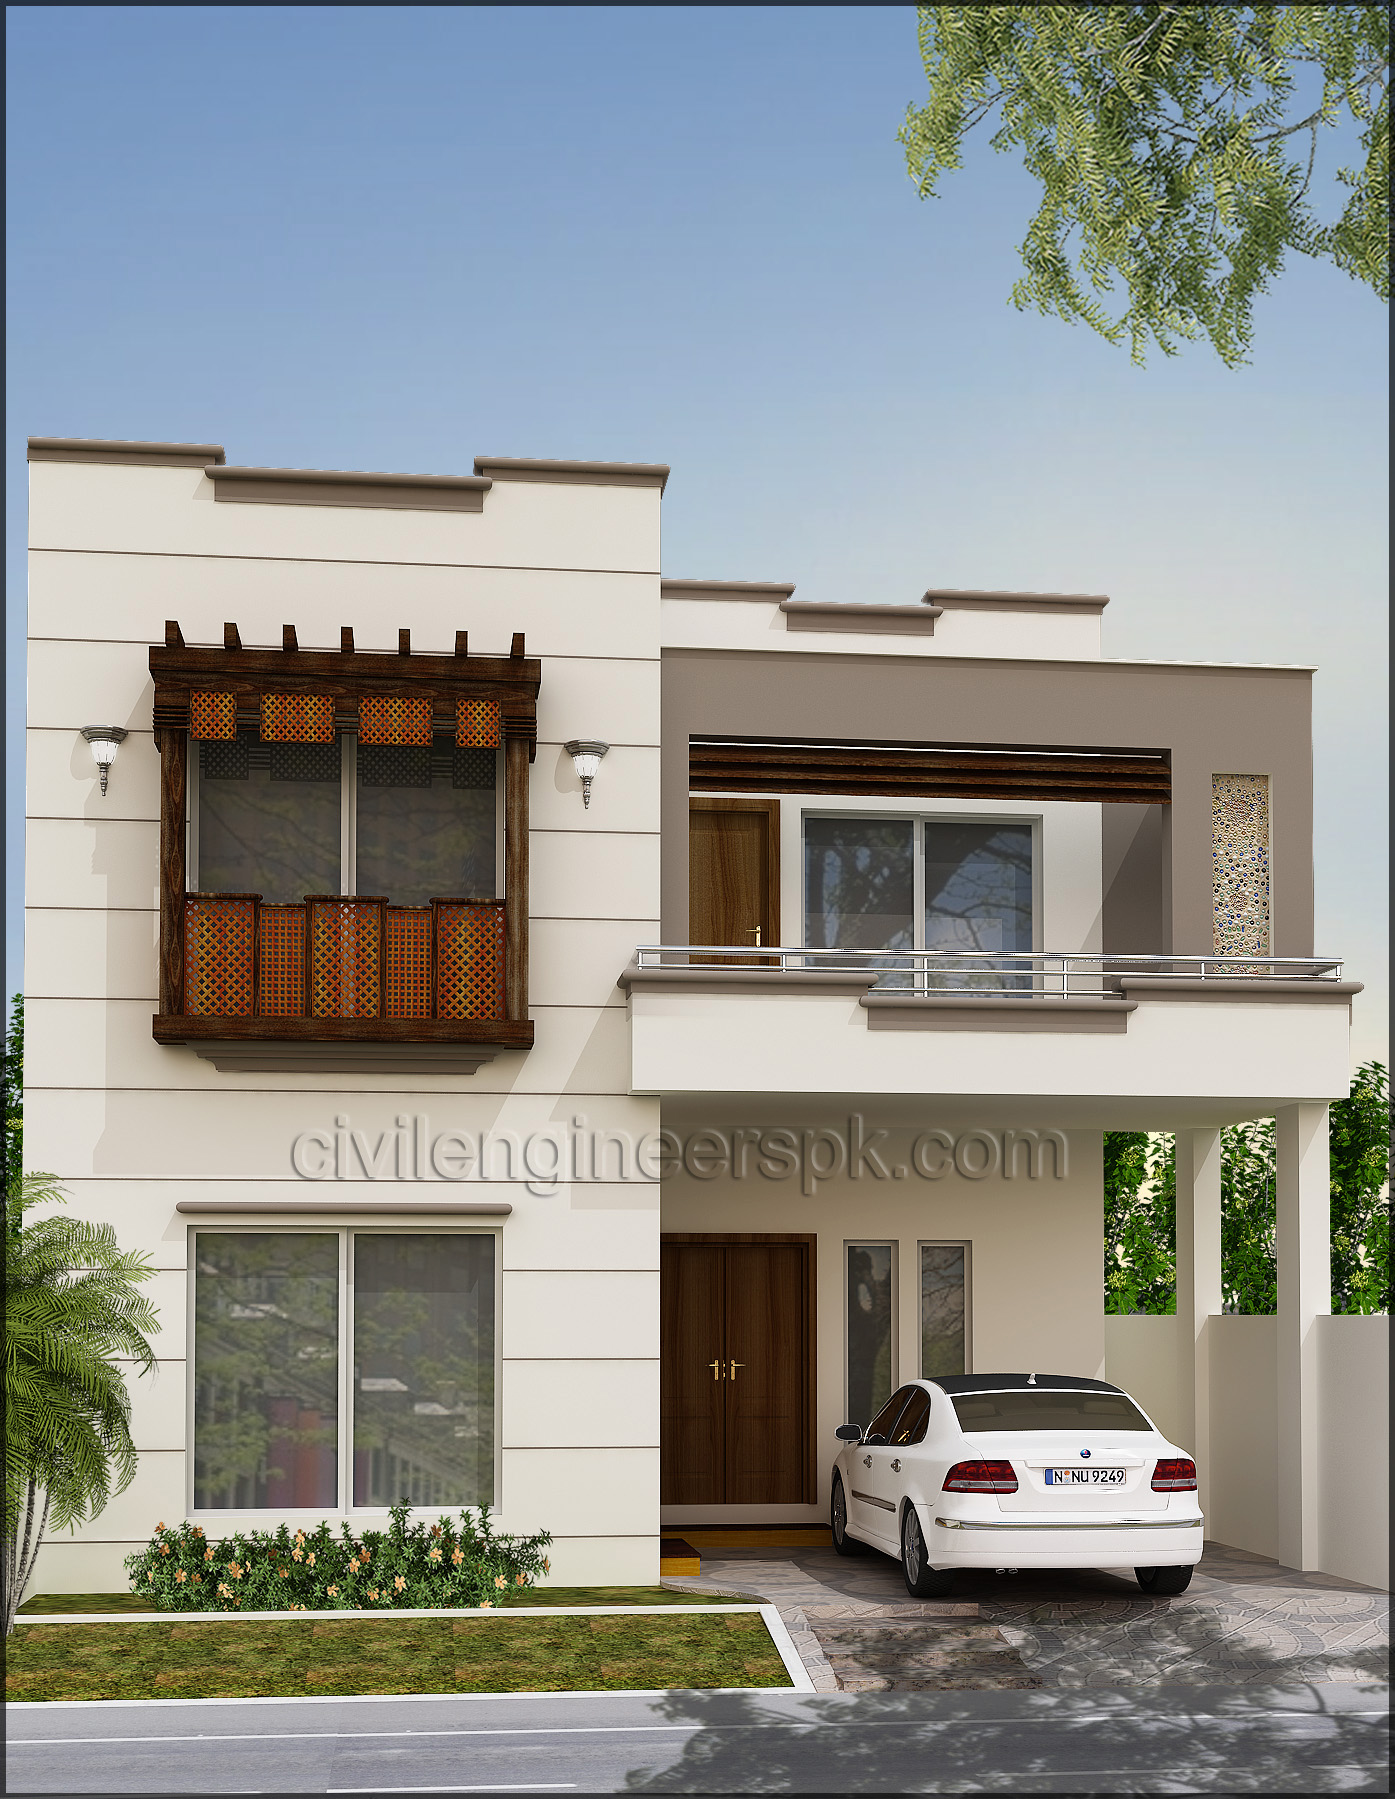 Front Elevation Pictures : Front views civil engineers pk